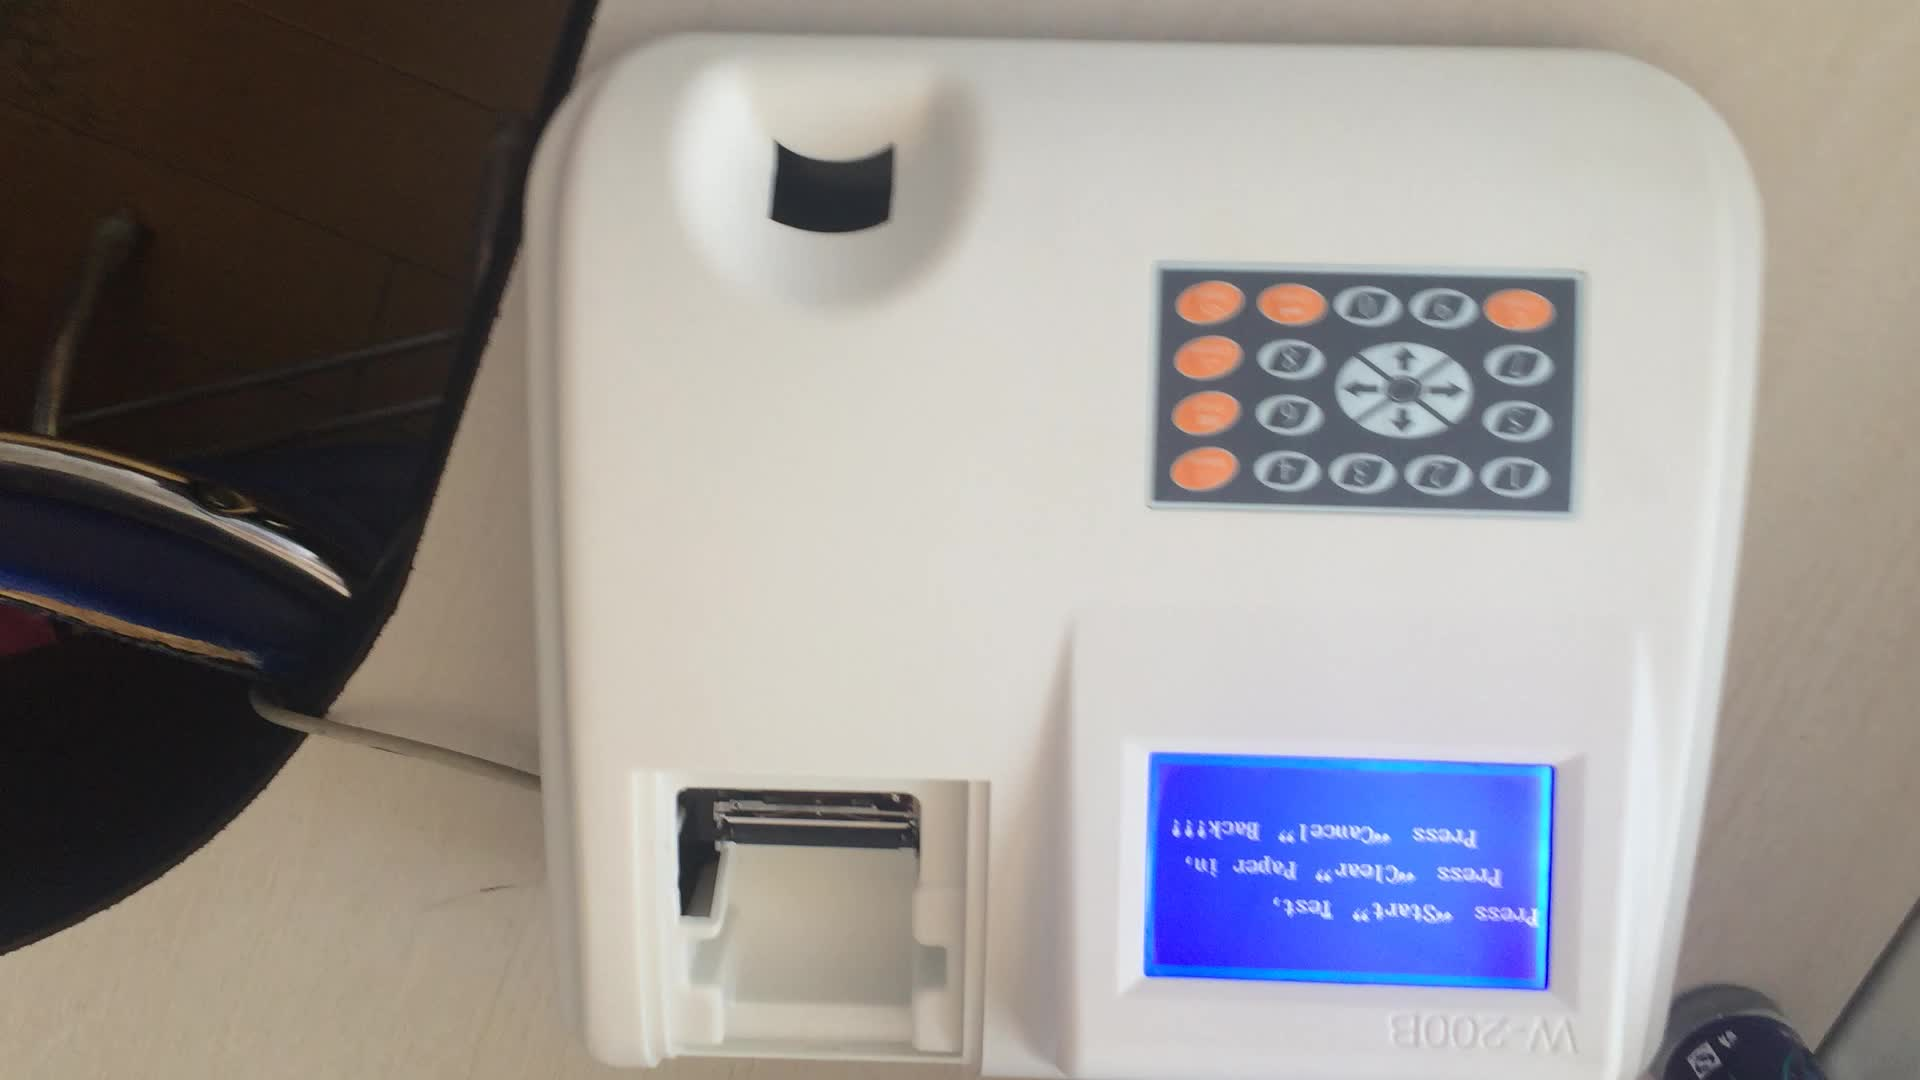 CE13485 Veterinary and Human Diagnosis System Semi Automatic Urine Analyzer